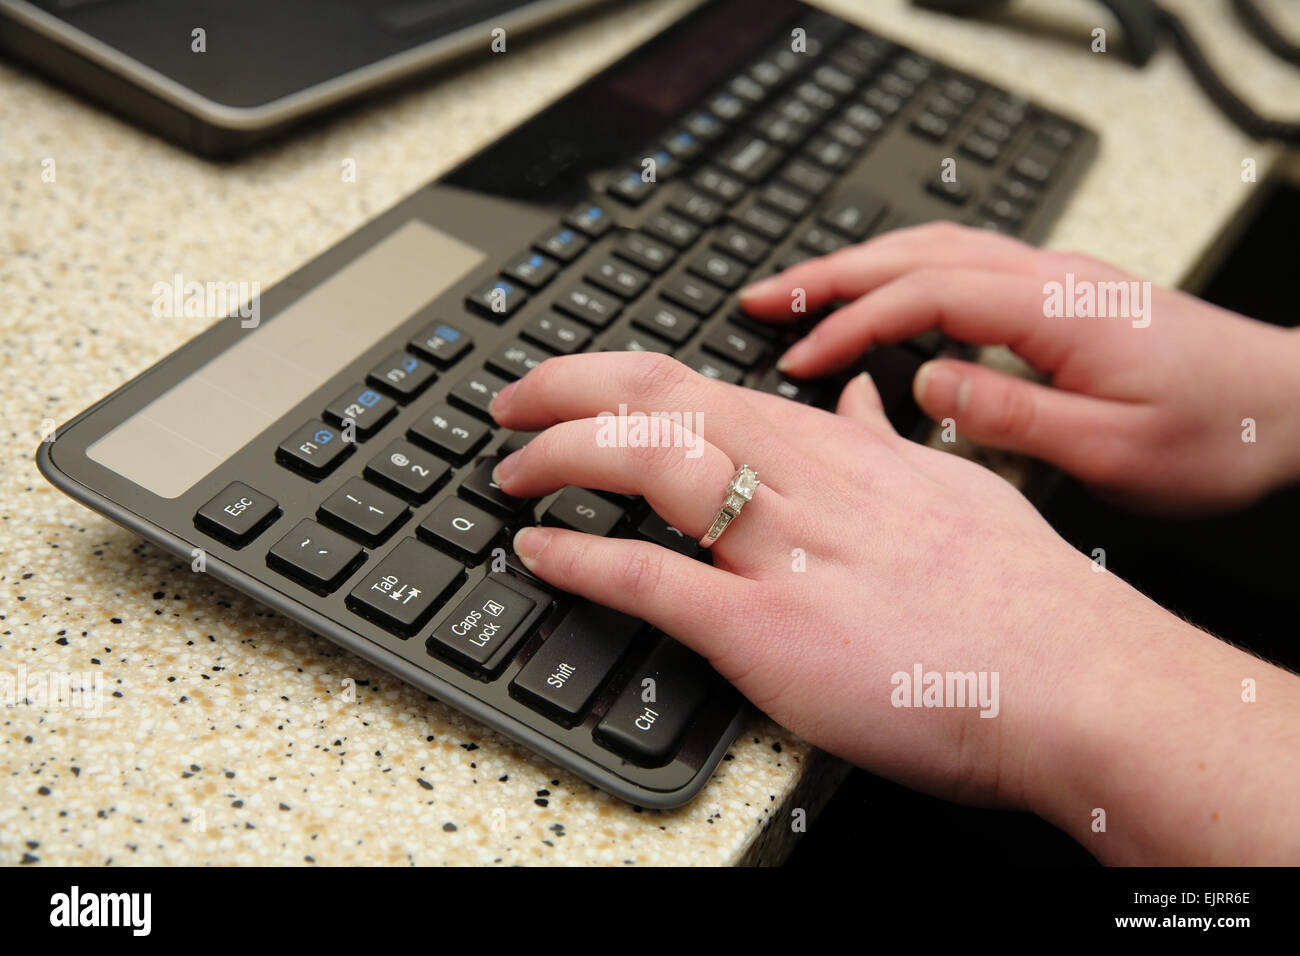 closeup of woman's hands typing on modern keyboard - Stock Image